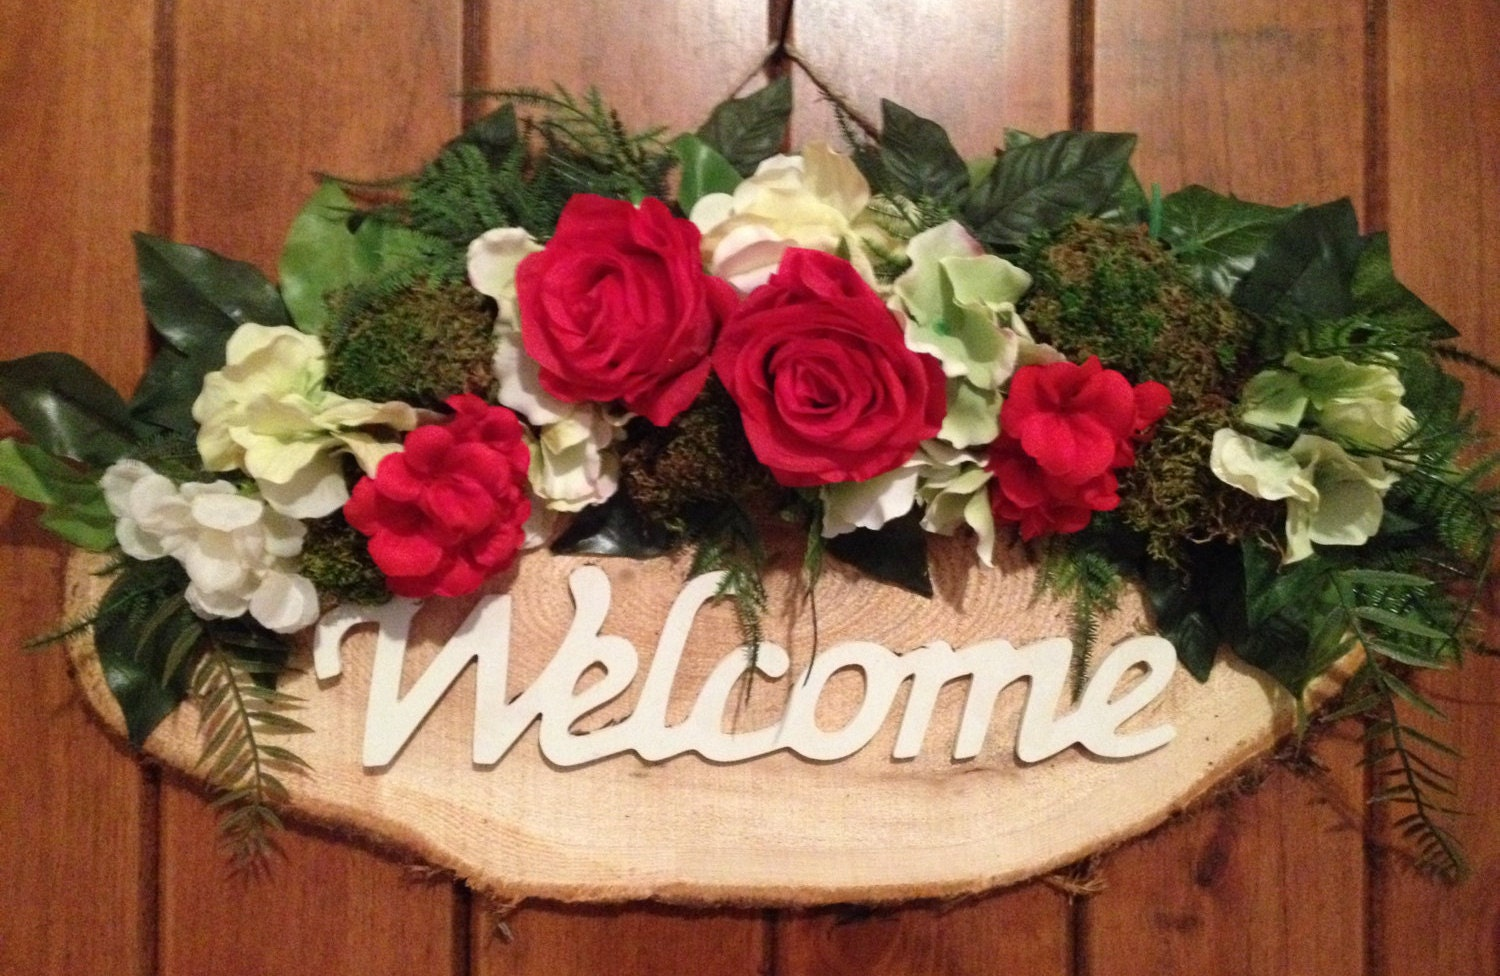 Welcome sign decorated with flowers door decor front door wreath welcome sign decorated with flowers door decor front door wreath door wreath wreath door swag indoor wreath outdoor wreath spring decor rubansaba